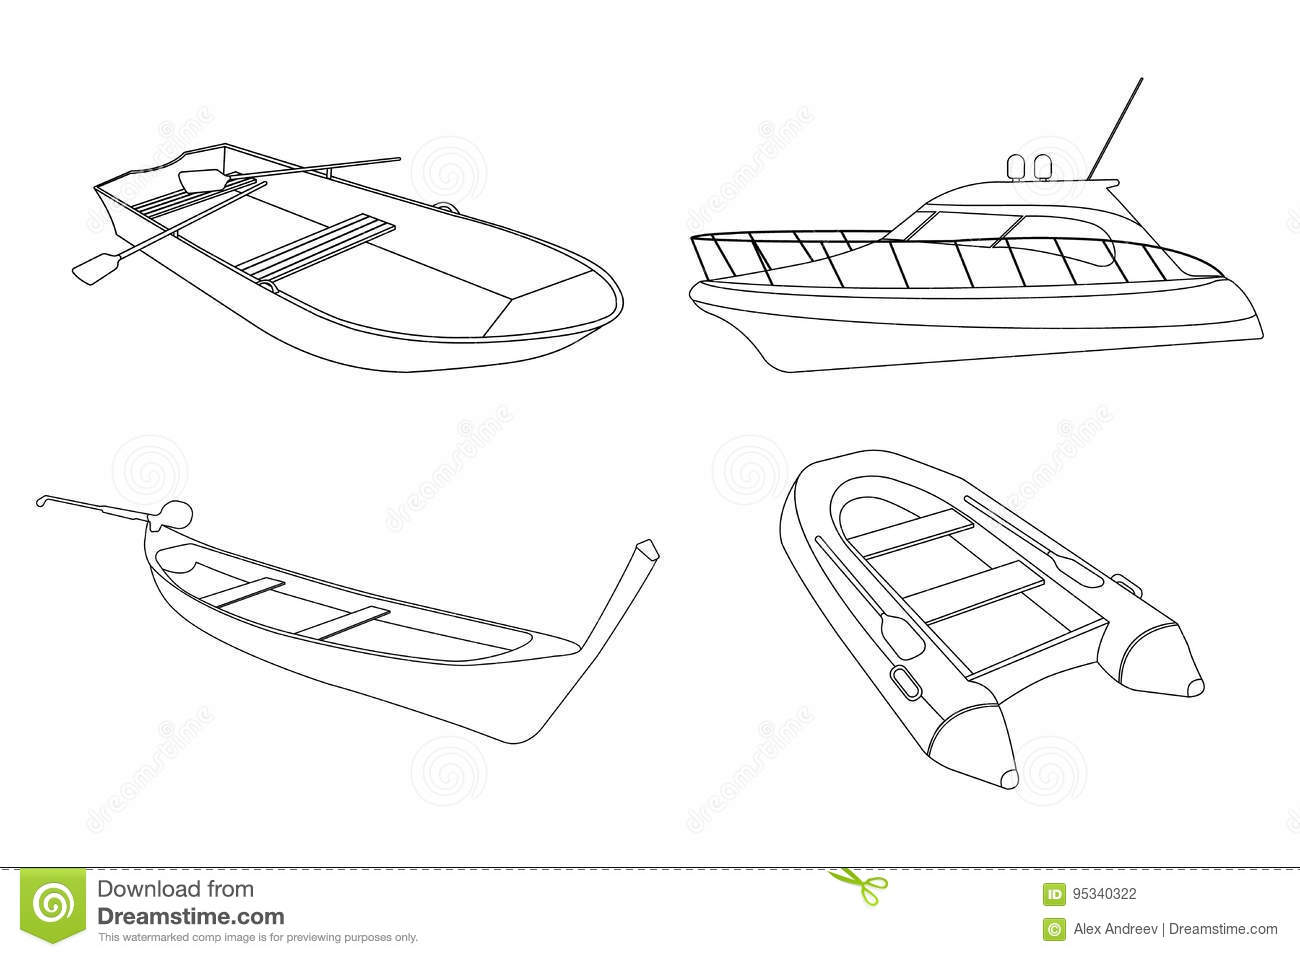 Canoe Illustrations and Clipart. 6,817 Canoe royalty free illustrations,  drawings and graphics available to search from thousands of vector EPS clip  art providers.